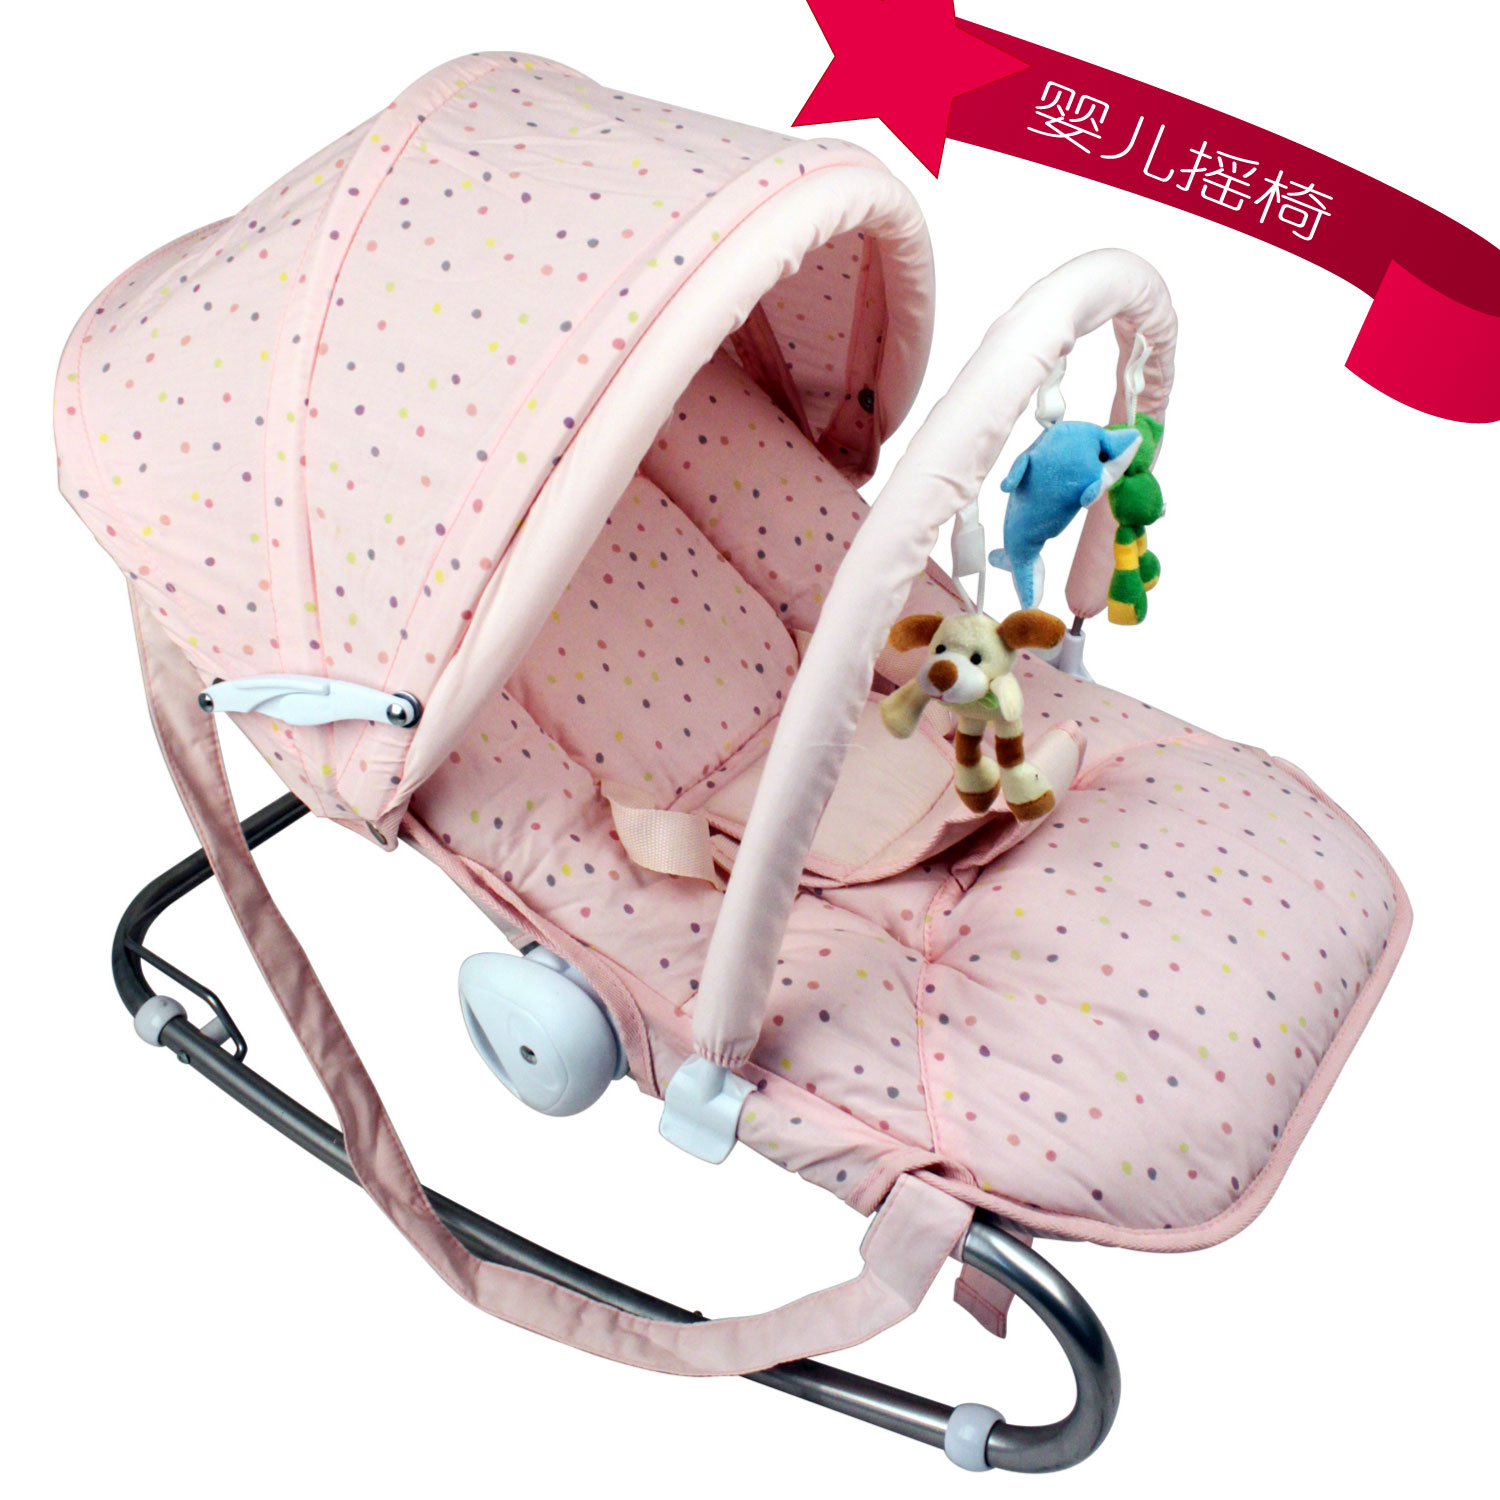 Rocking crib for sale philippines - Multifunctional Baby Rocking Chair Cradle Baby Chair Reassure The Rocking Chair Chaise Lounge Electric China